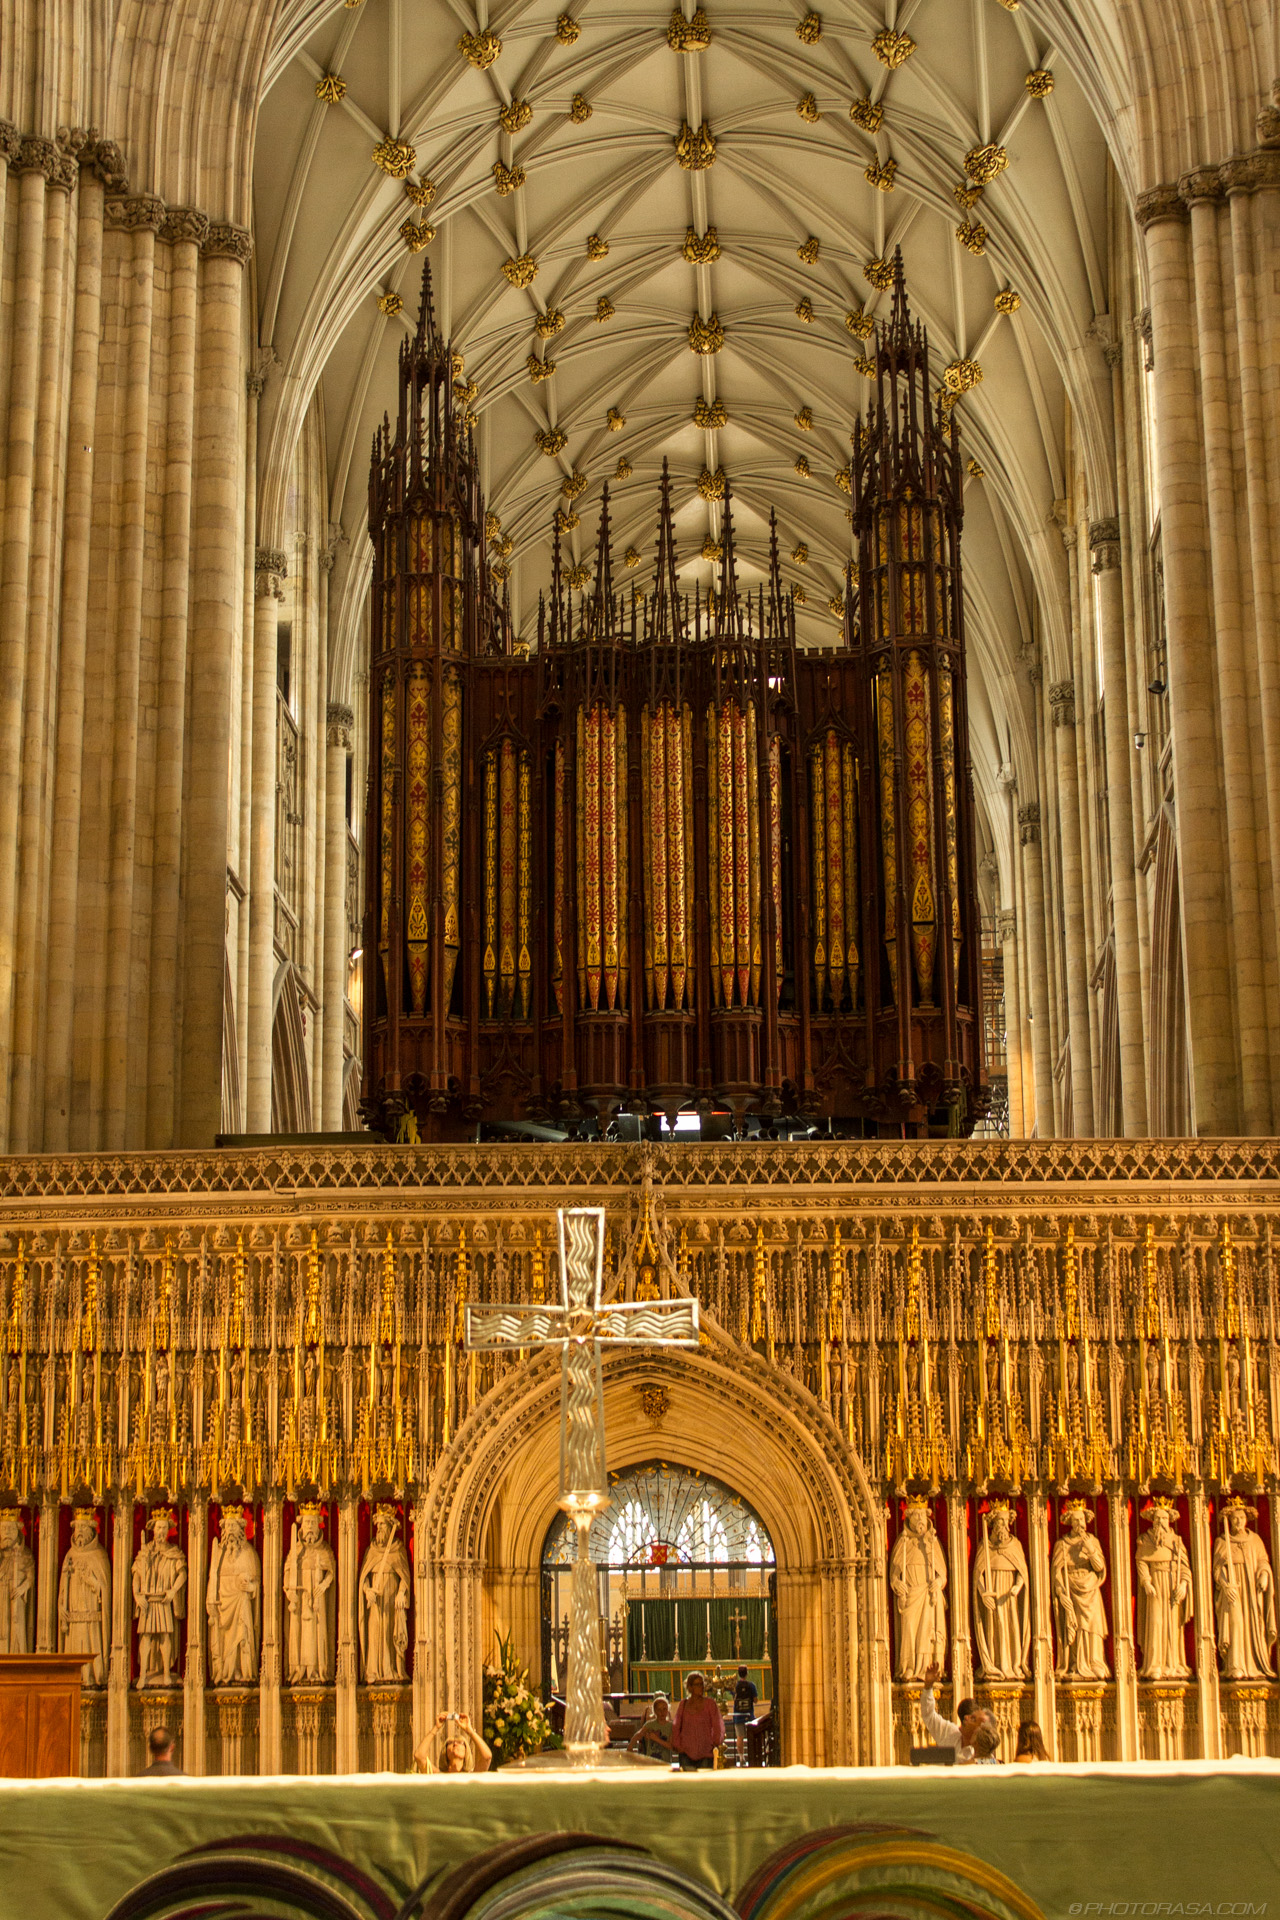 http://photorasa.com/yorkminster-cathedral/organ-and-cross-at-the-quire/